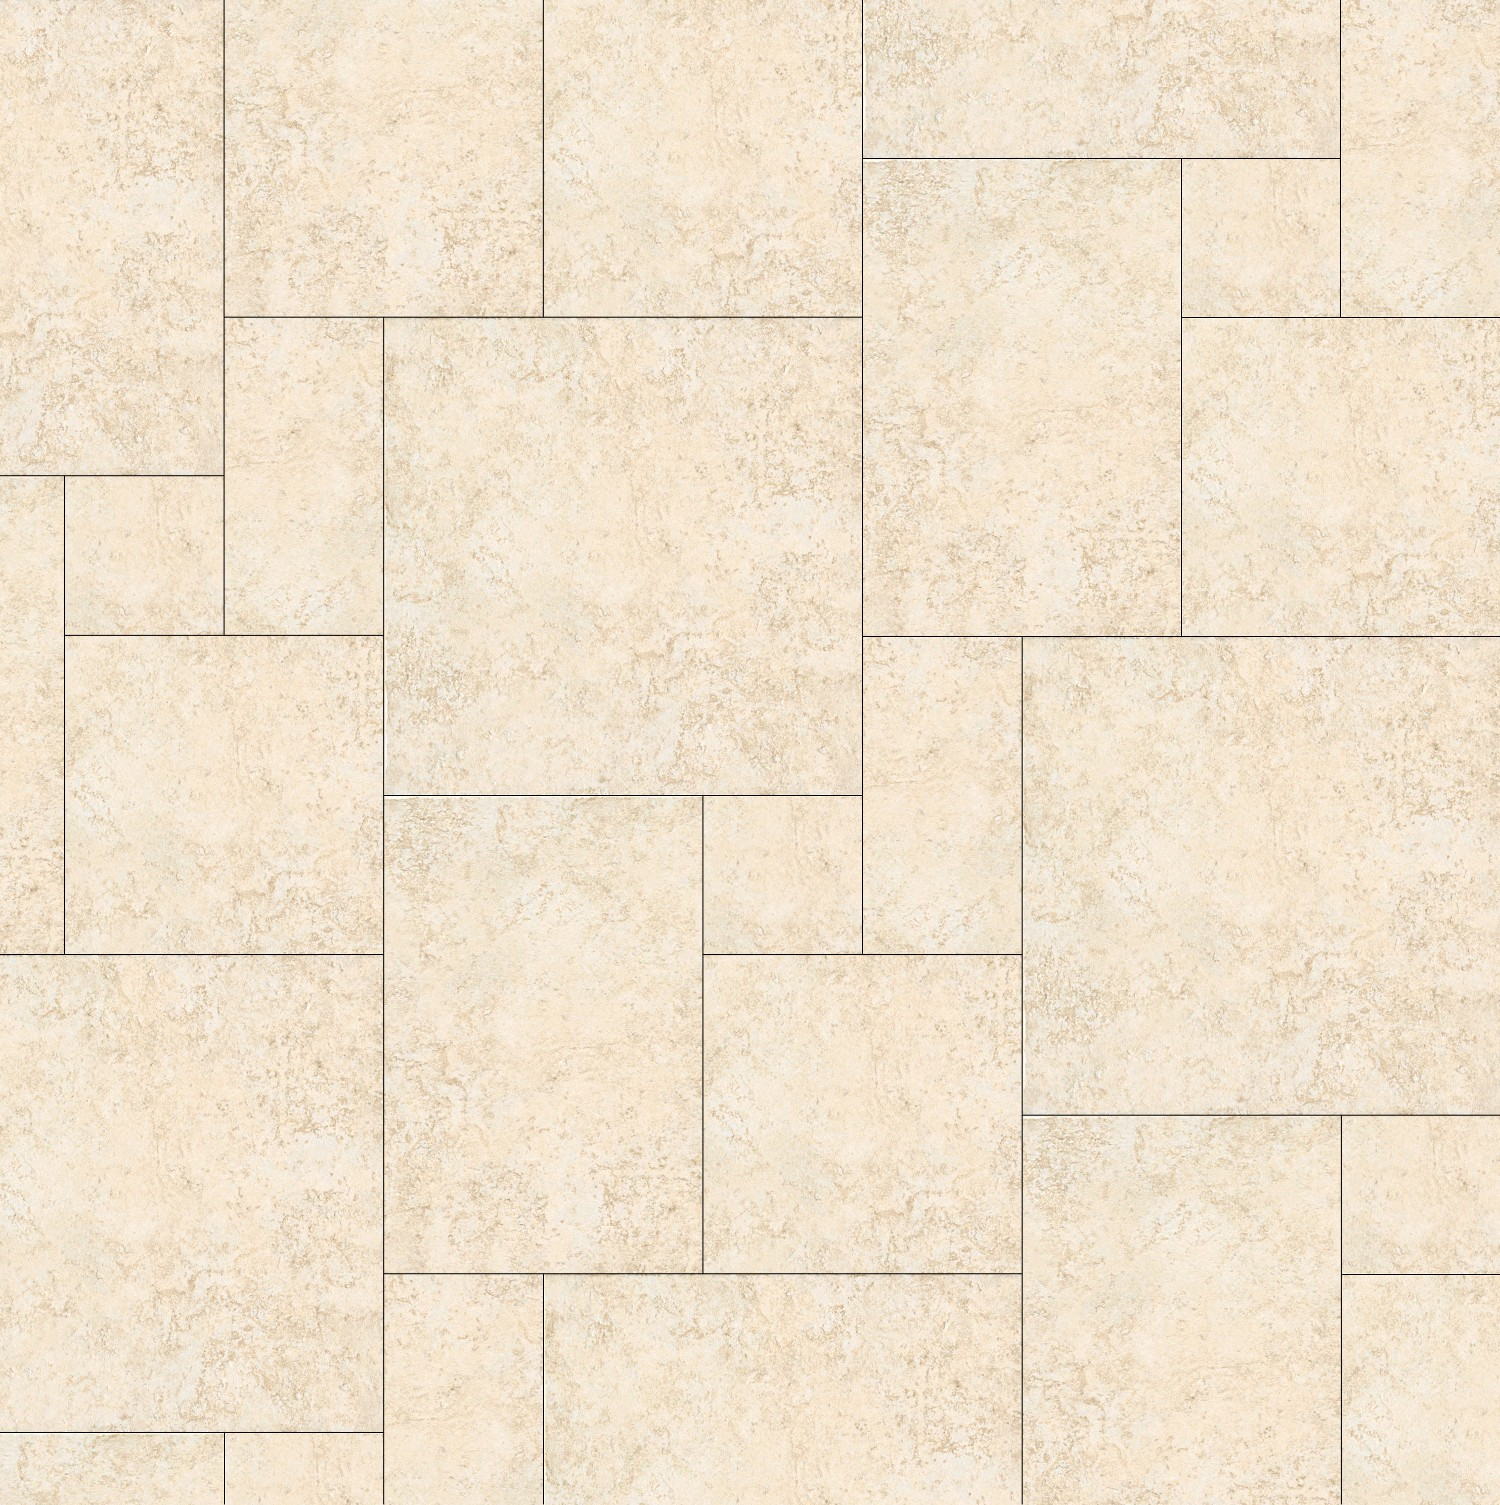 Bathroom tiles texture - Tile Wall With Texture Bathroom Tiles Floor And Wall Bathroom Tile